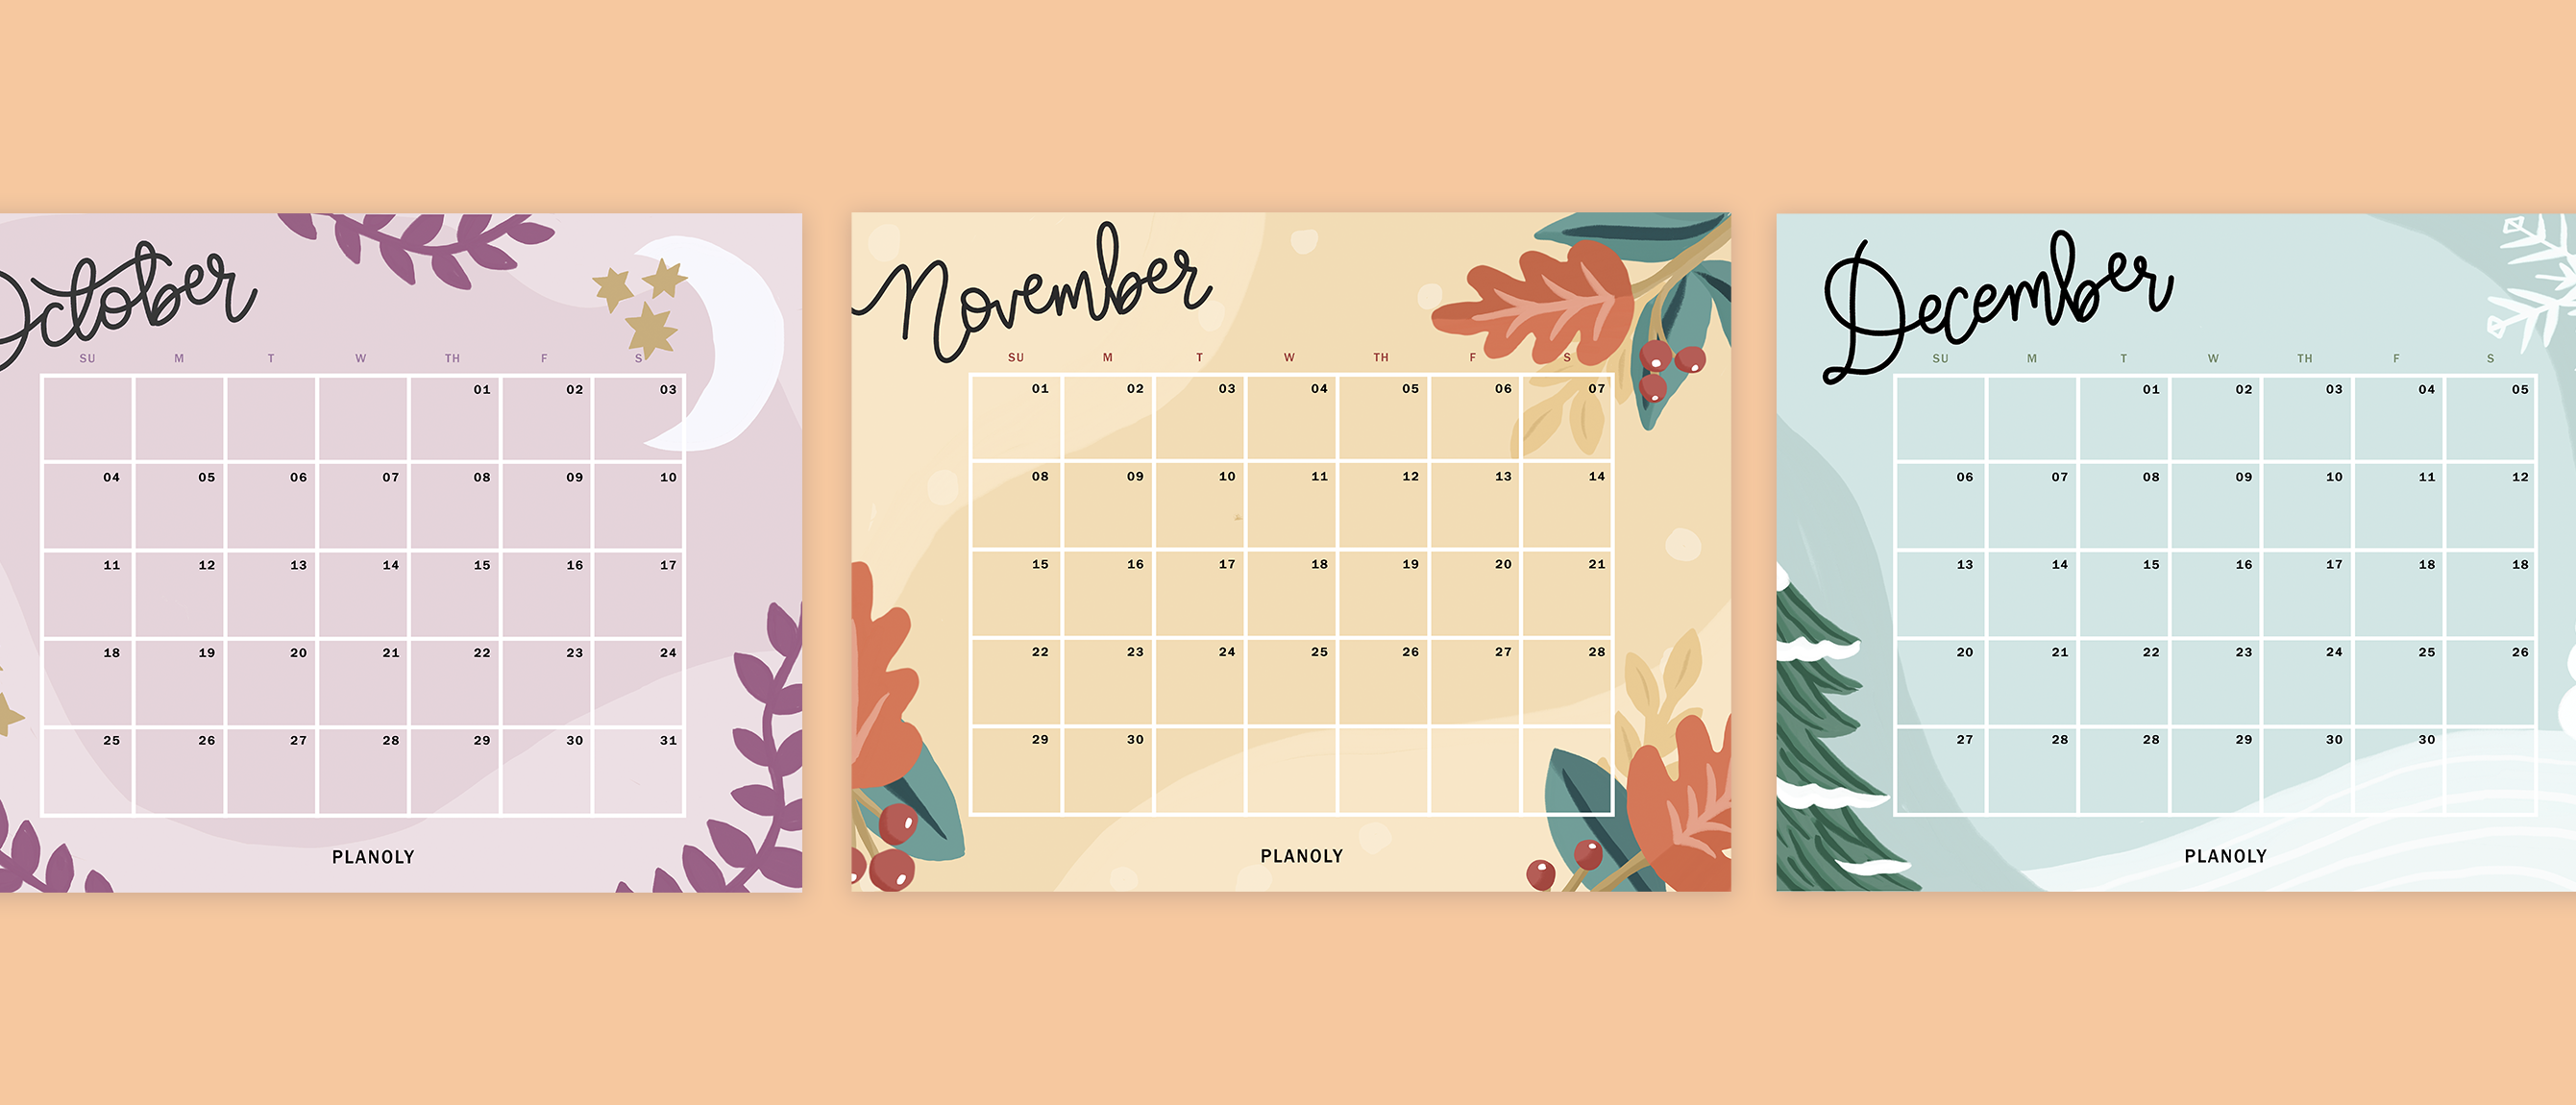 PLANOLY-blog post- Q4 2020 Content Calendars - banner-1